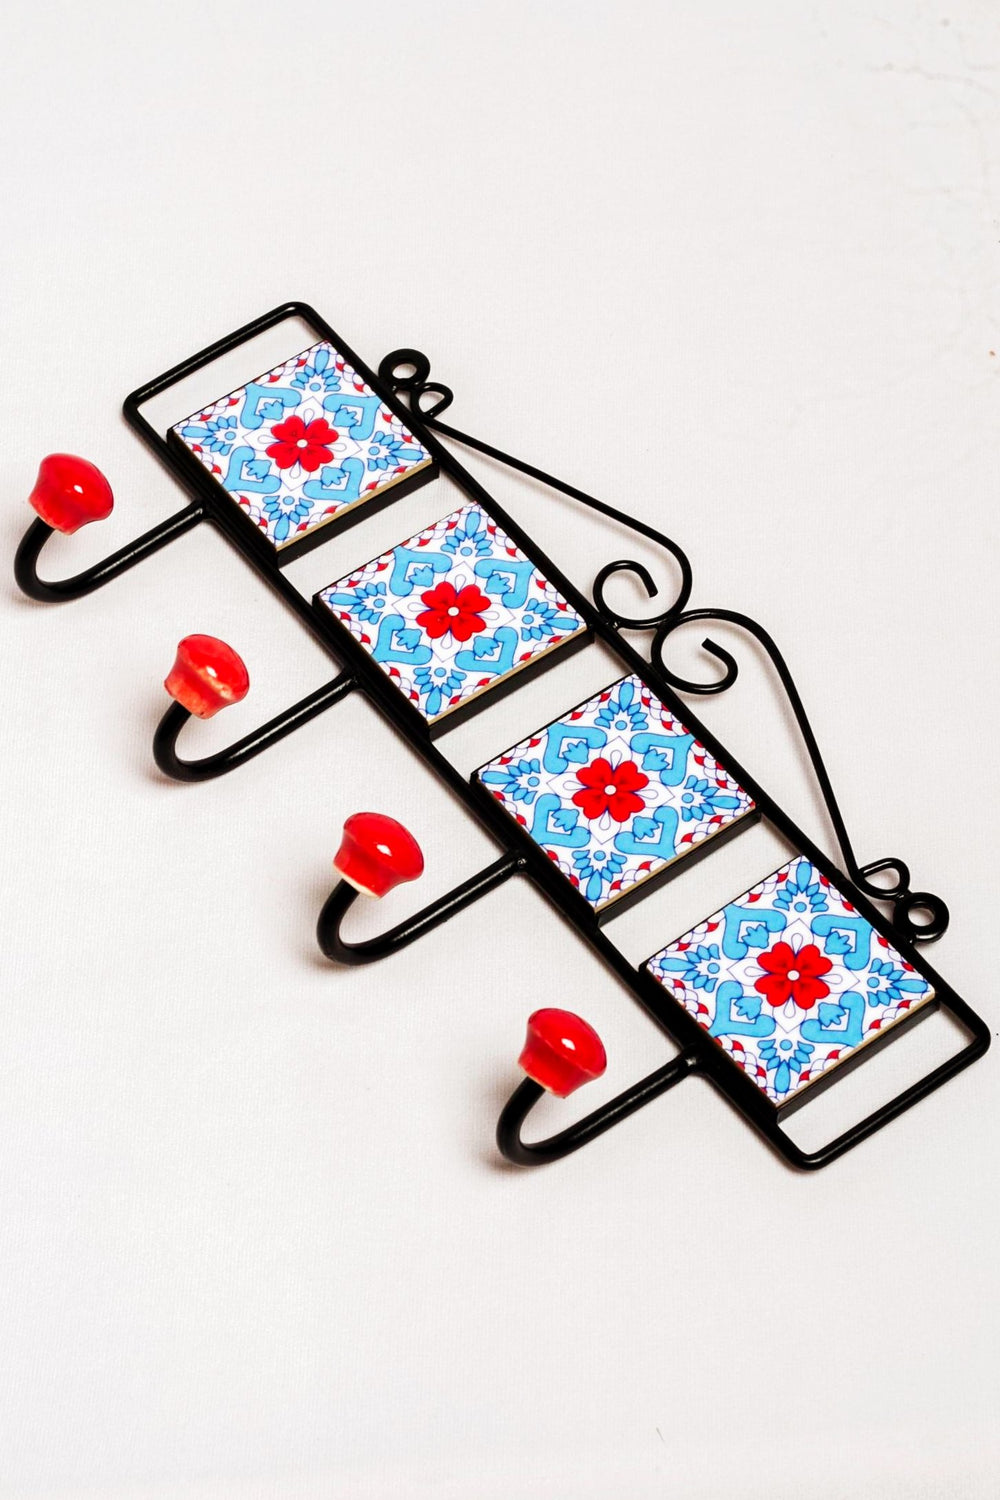 Metal and 4 ceramic tile 4 wall hook, white with blue and red floral motif